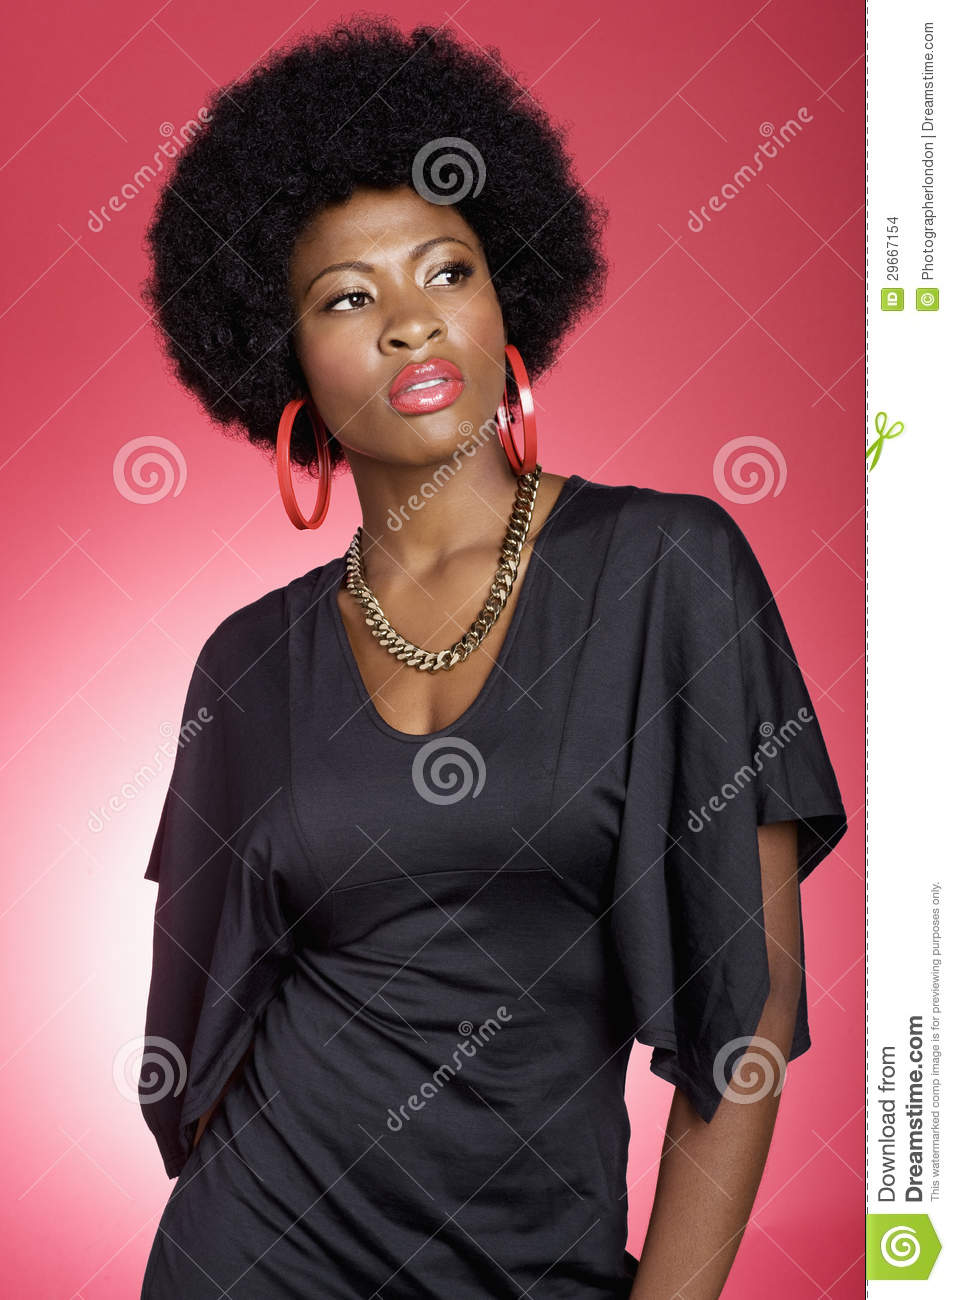 Trendy young African American woman over colored background